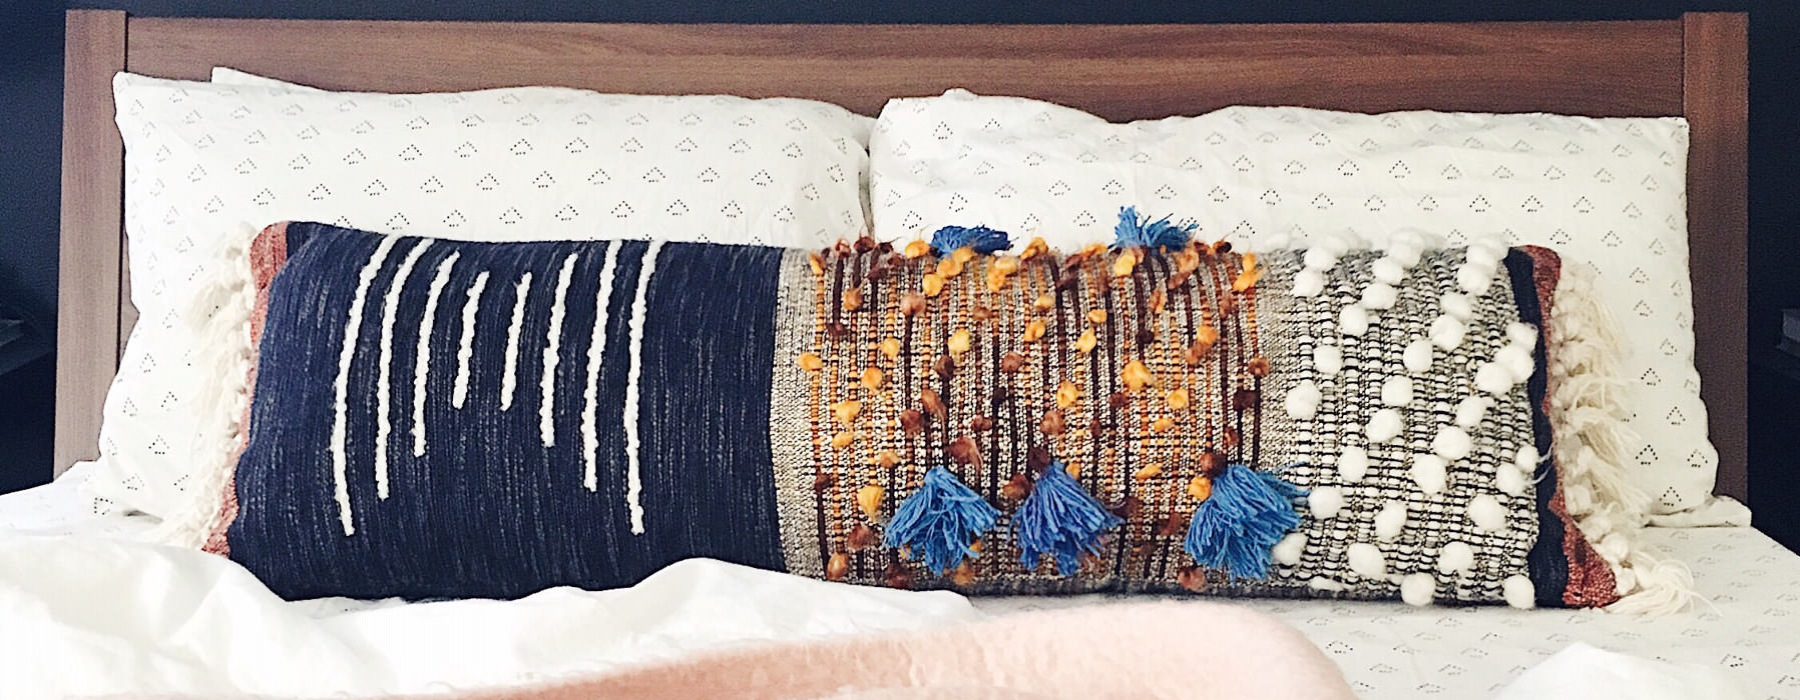 neatly placed pillows on unmade bed with brown, wooden headboard